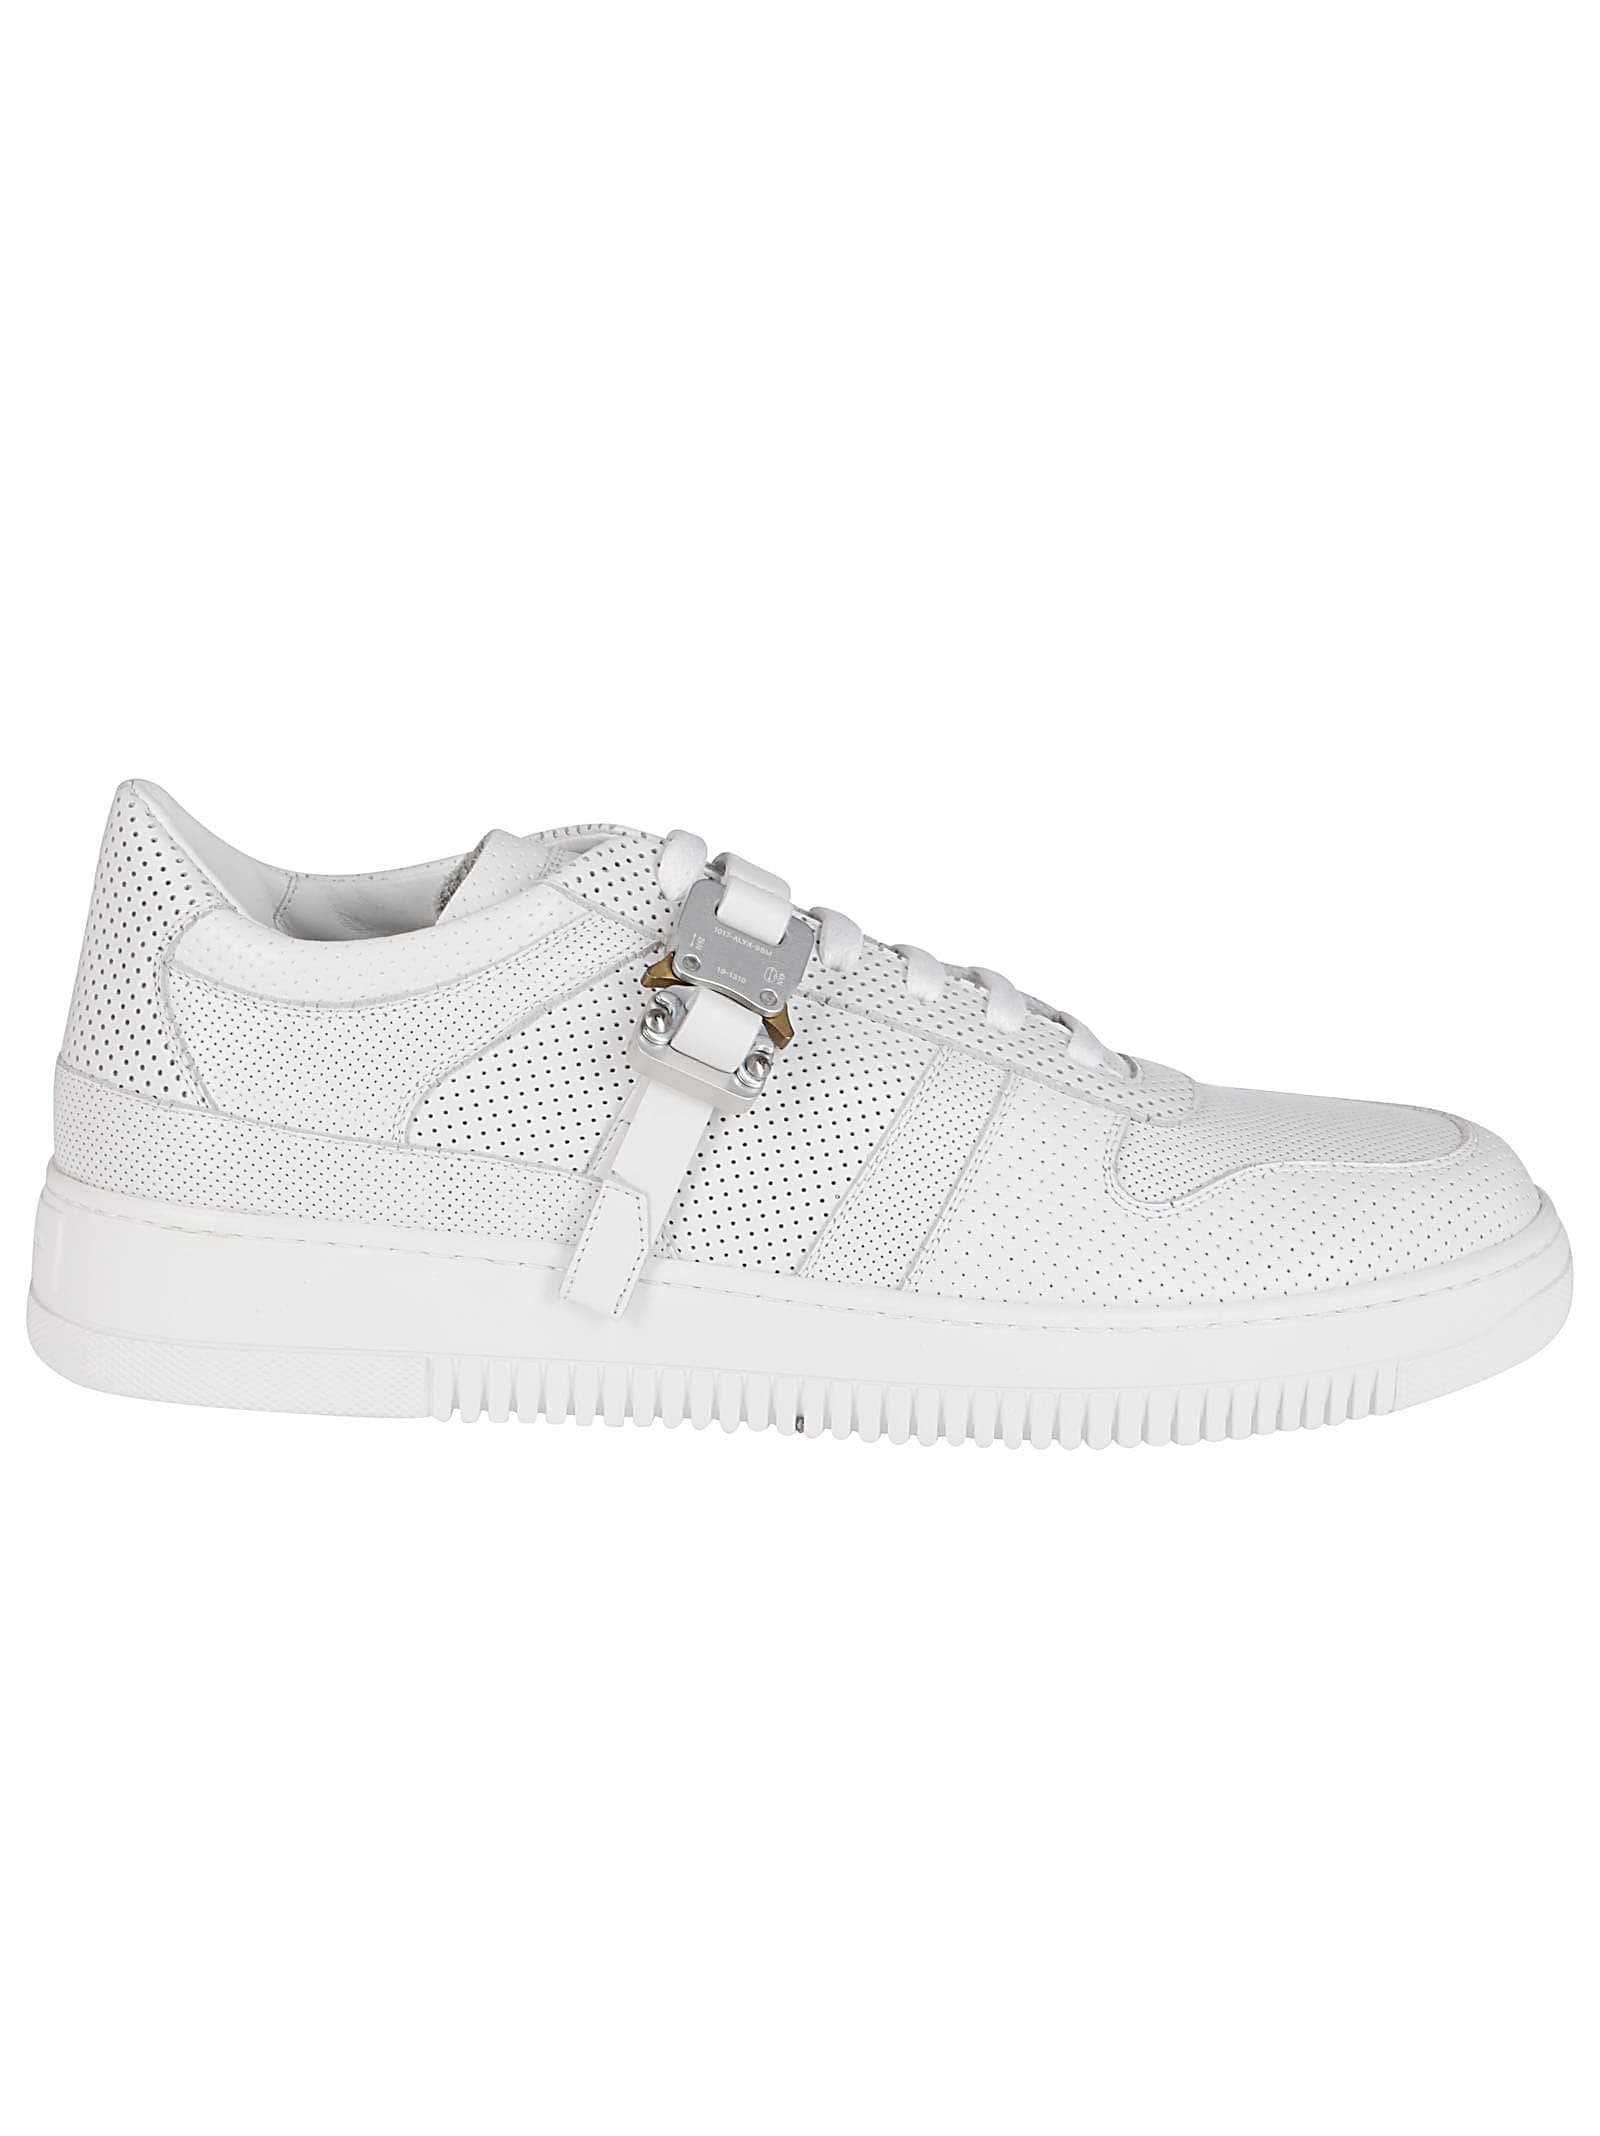 Alyx WHITE LEATHER BUCKLE SNEAKERS